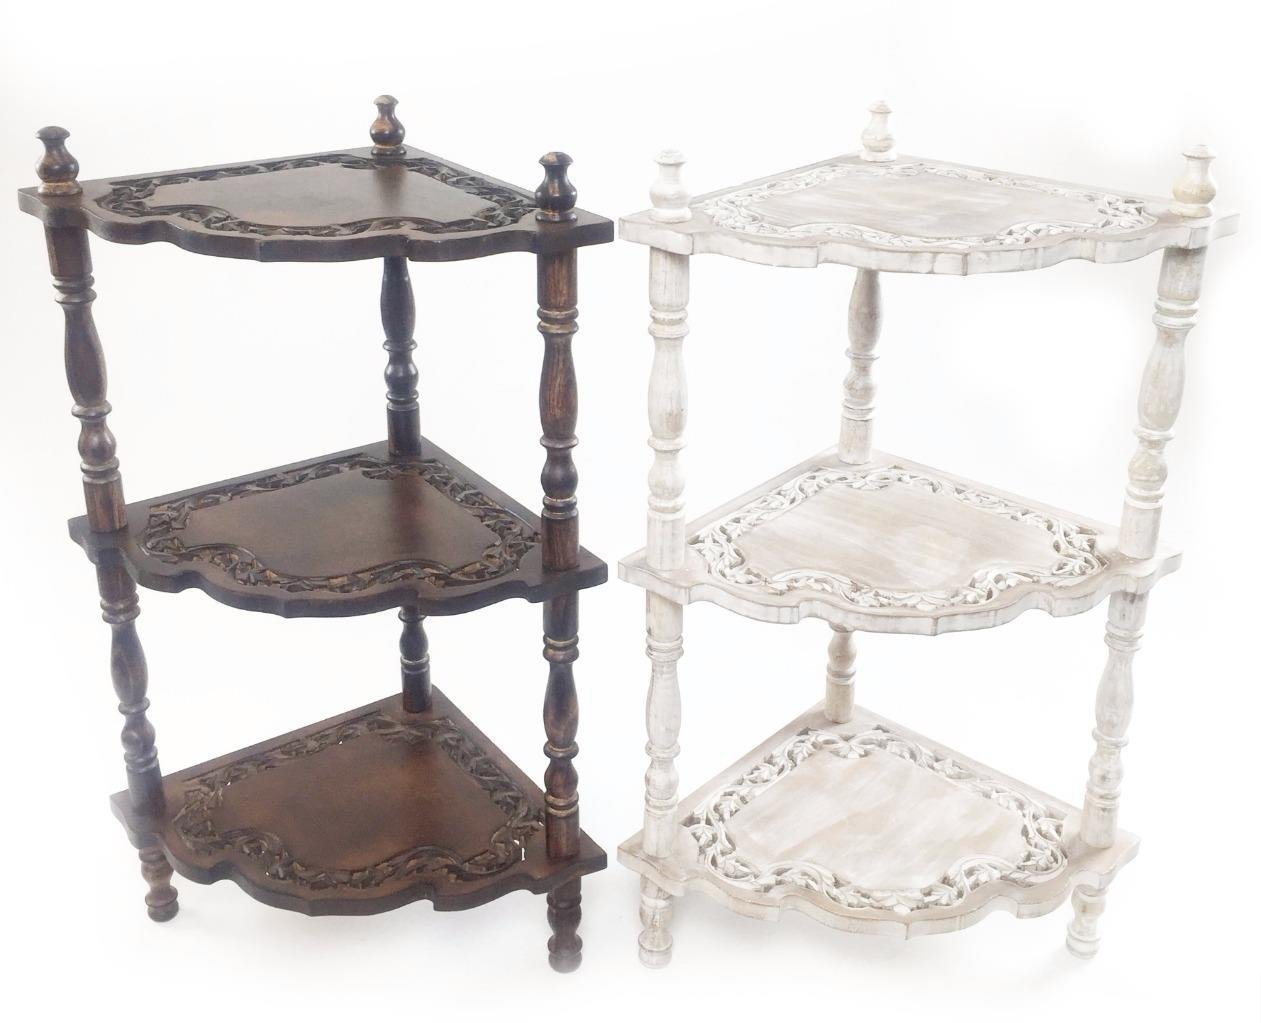 86x52cm Indian Hand Carved 3 Tier Corner Shelf Telephone Bedside Side Table (Brown) Topfurnishing Ltd 1464973642-001